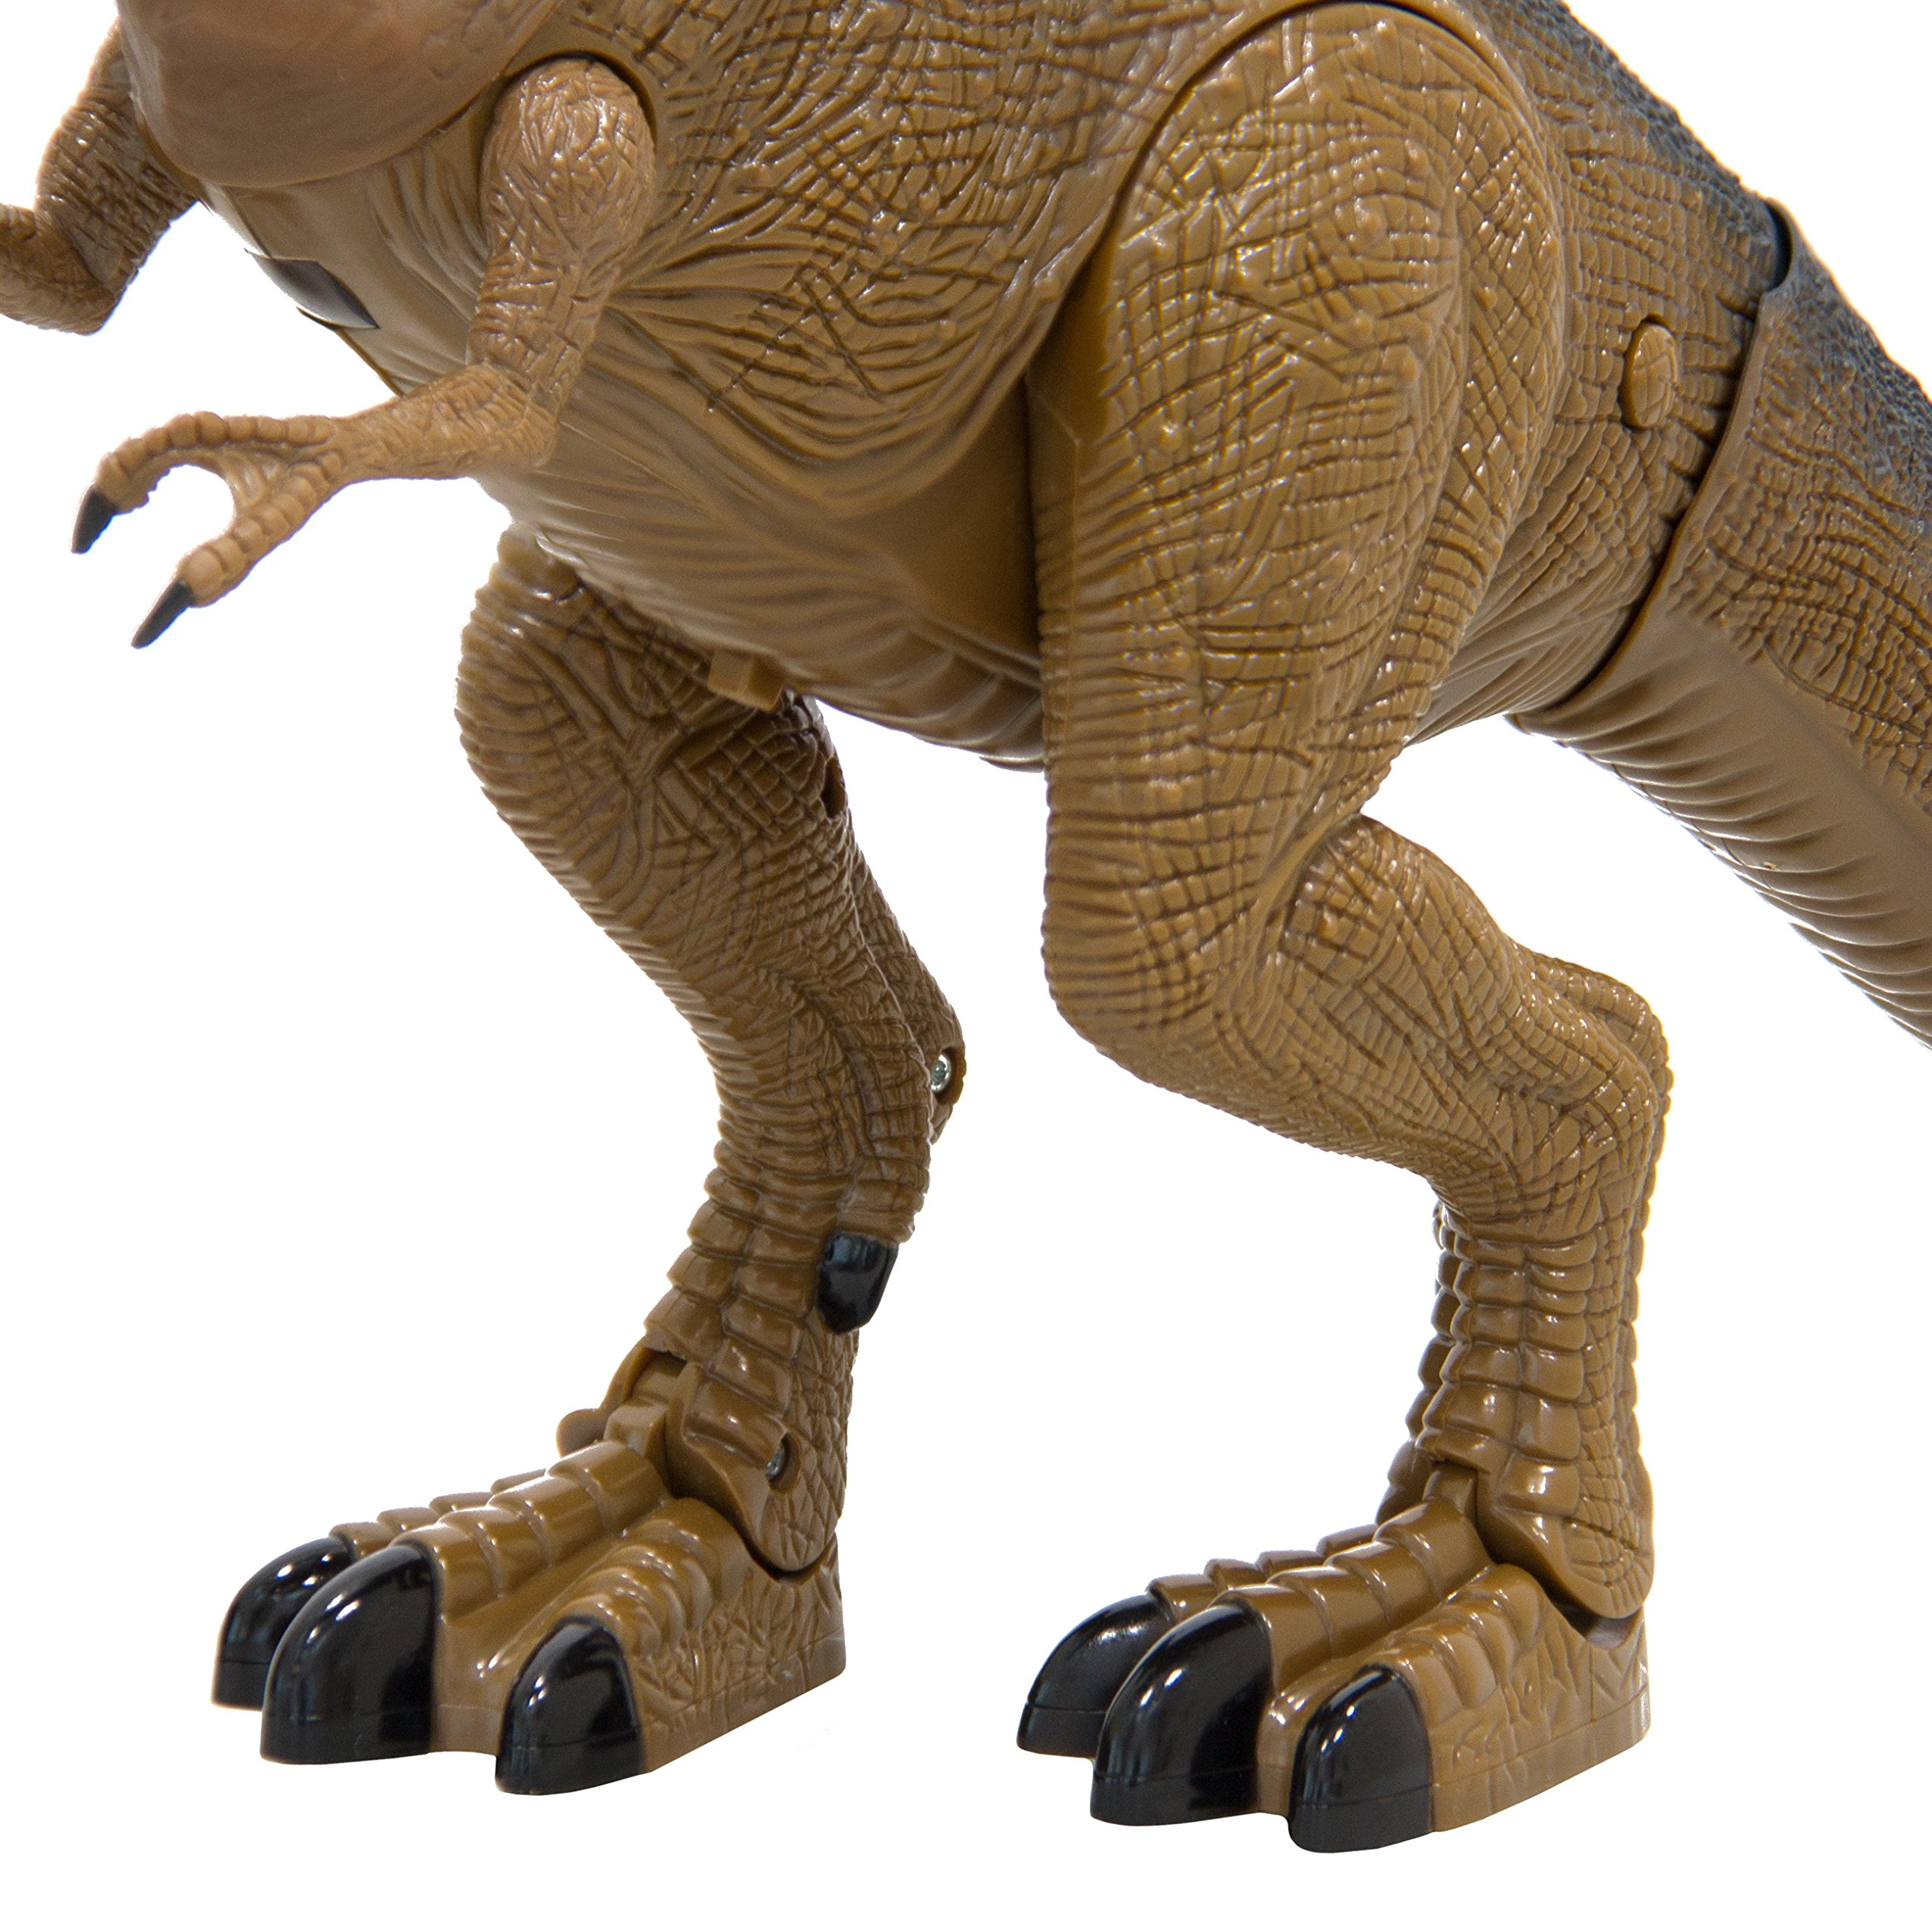 Best Choice Products 19in Kids Walking Remote Control Tyrannosaurus Rex Dinosaur RC Toy w/ Light-Up Eyes, Sounds by Best Choice Products (Image #3)